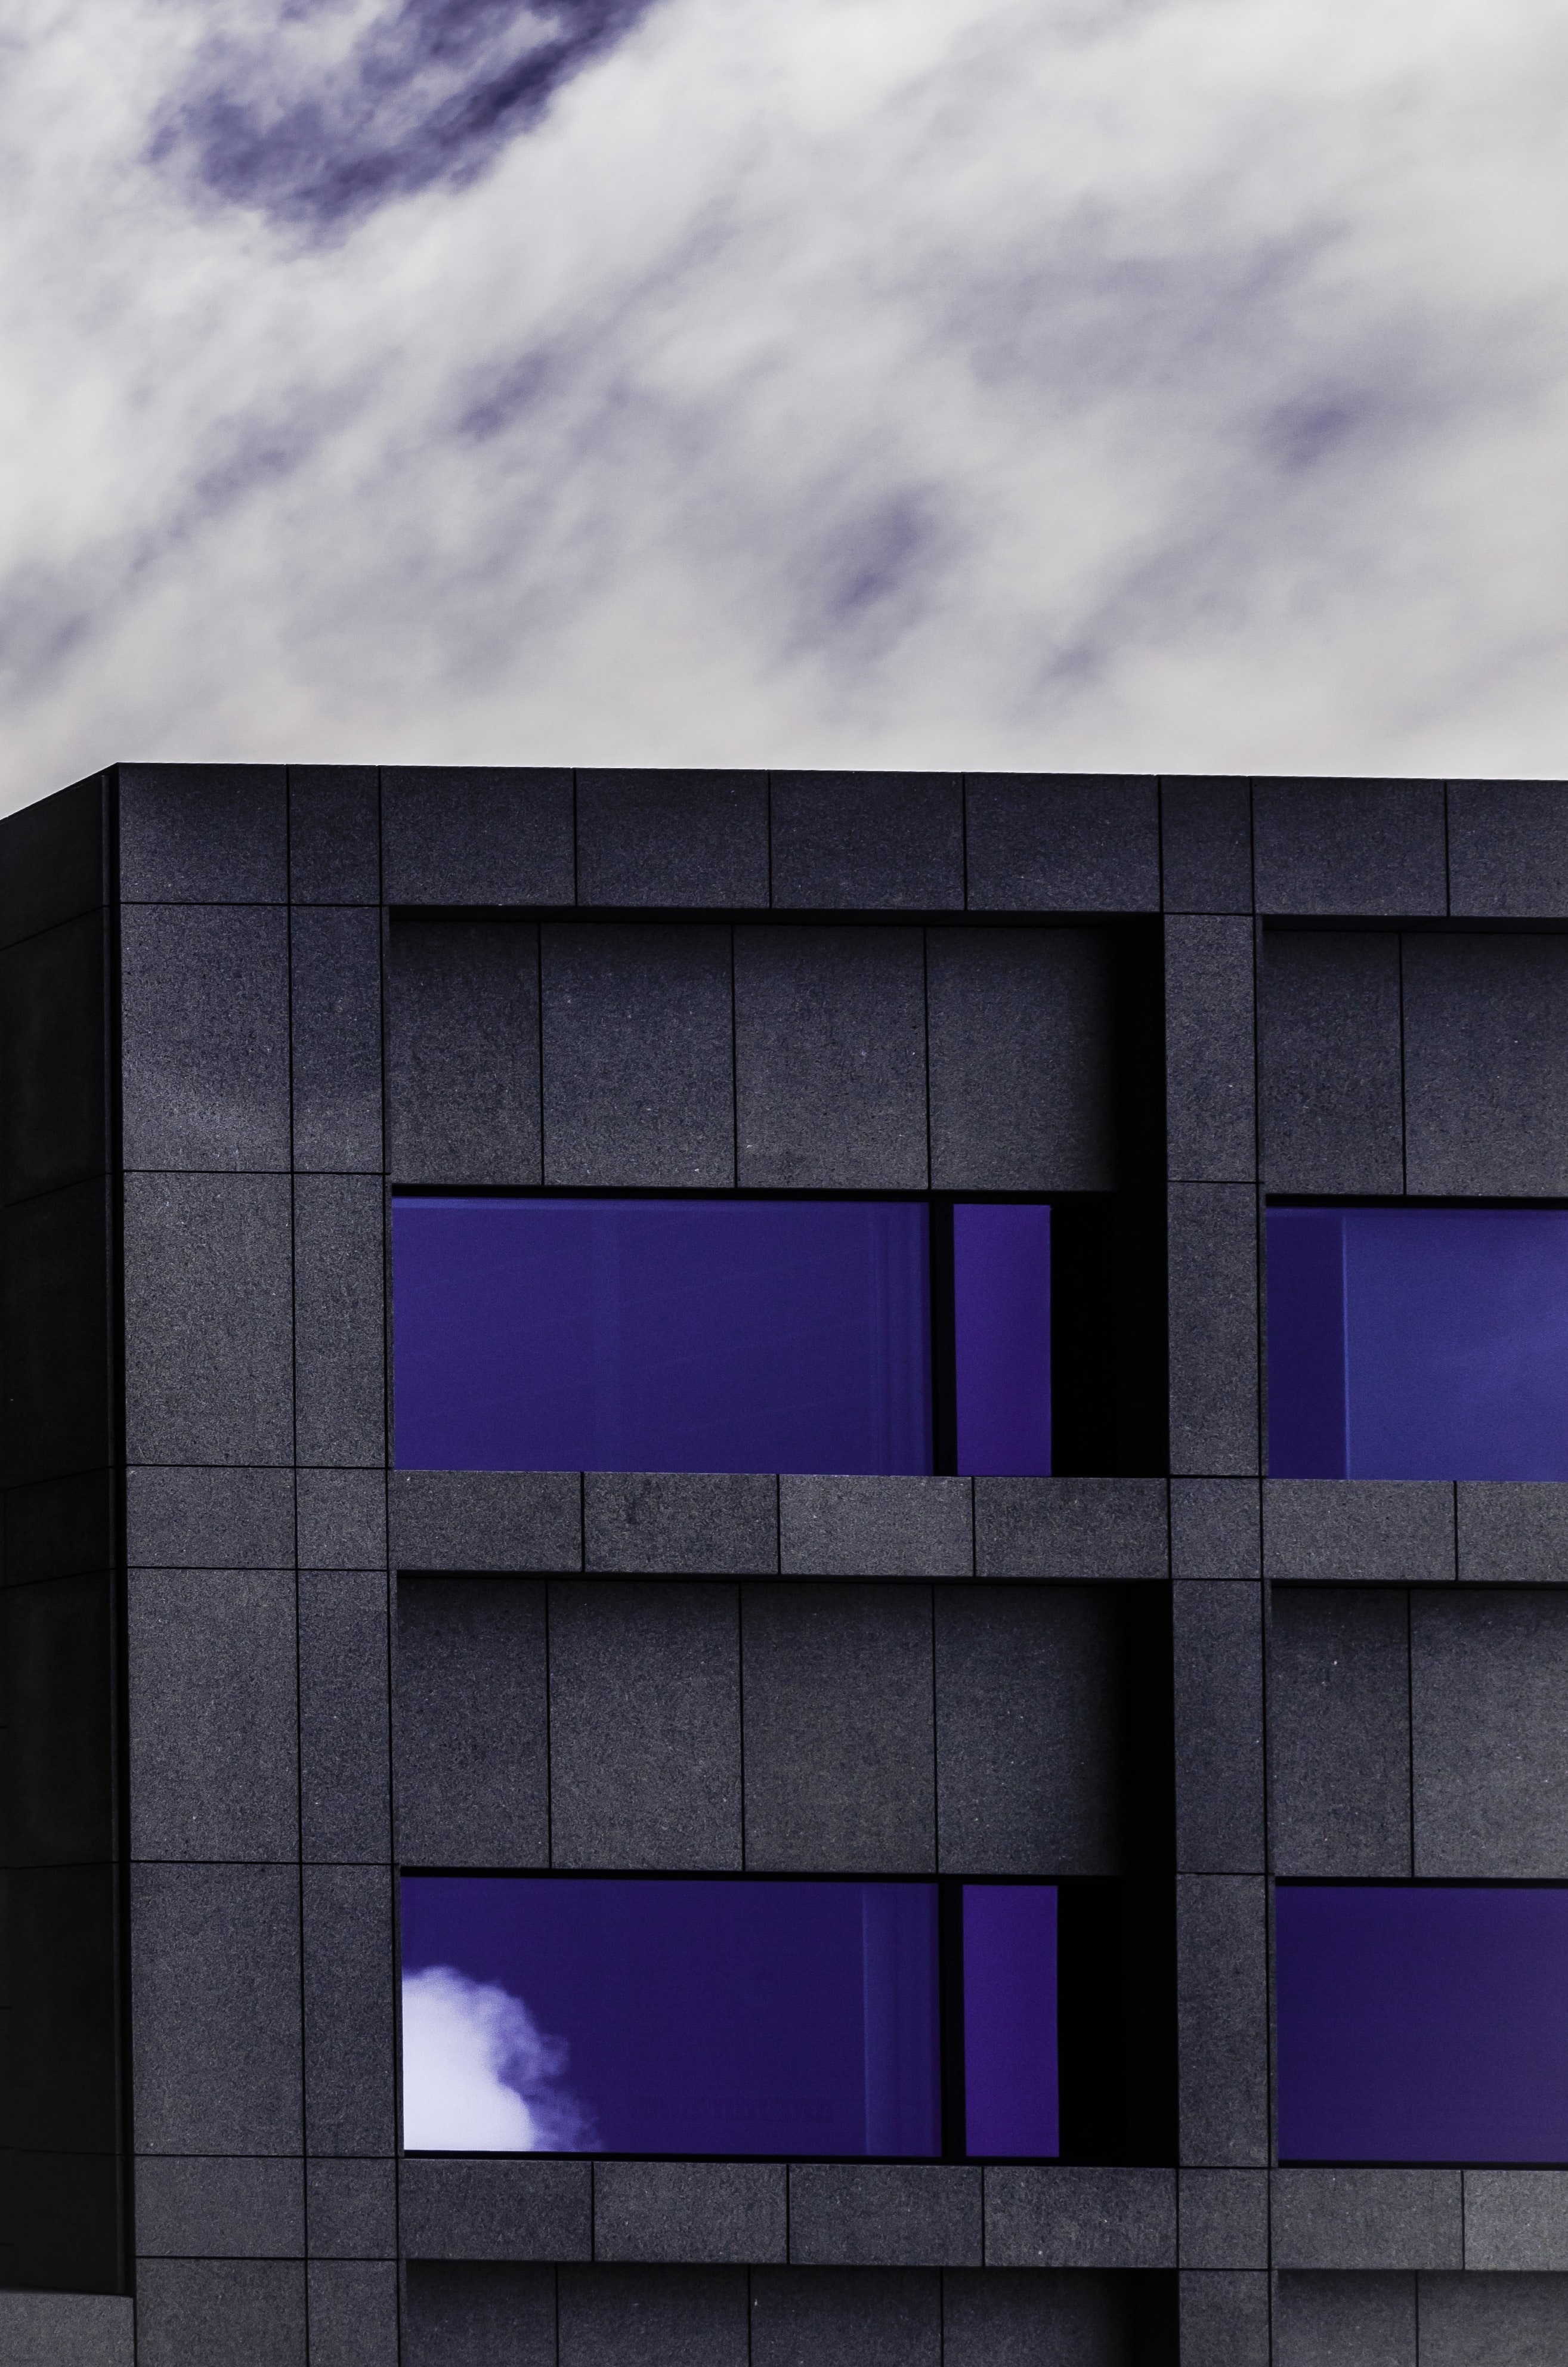 A black facade with dark blue sky reflected in the building's windows